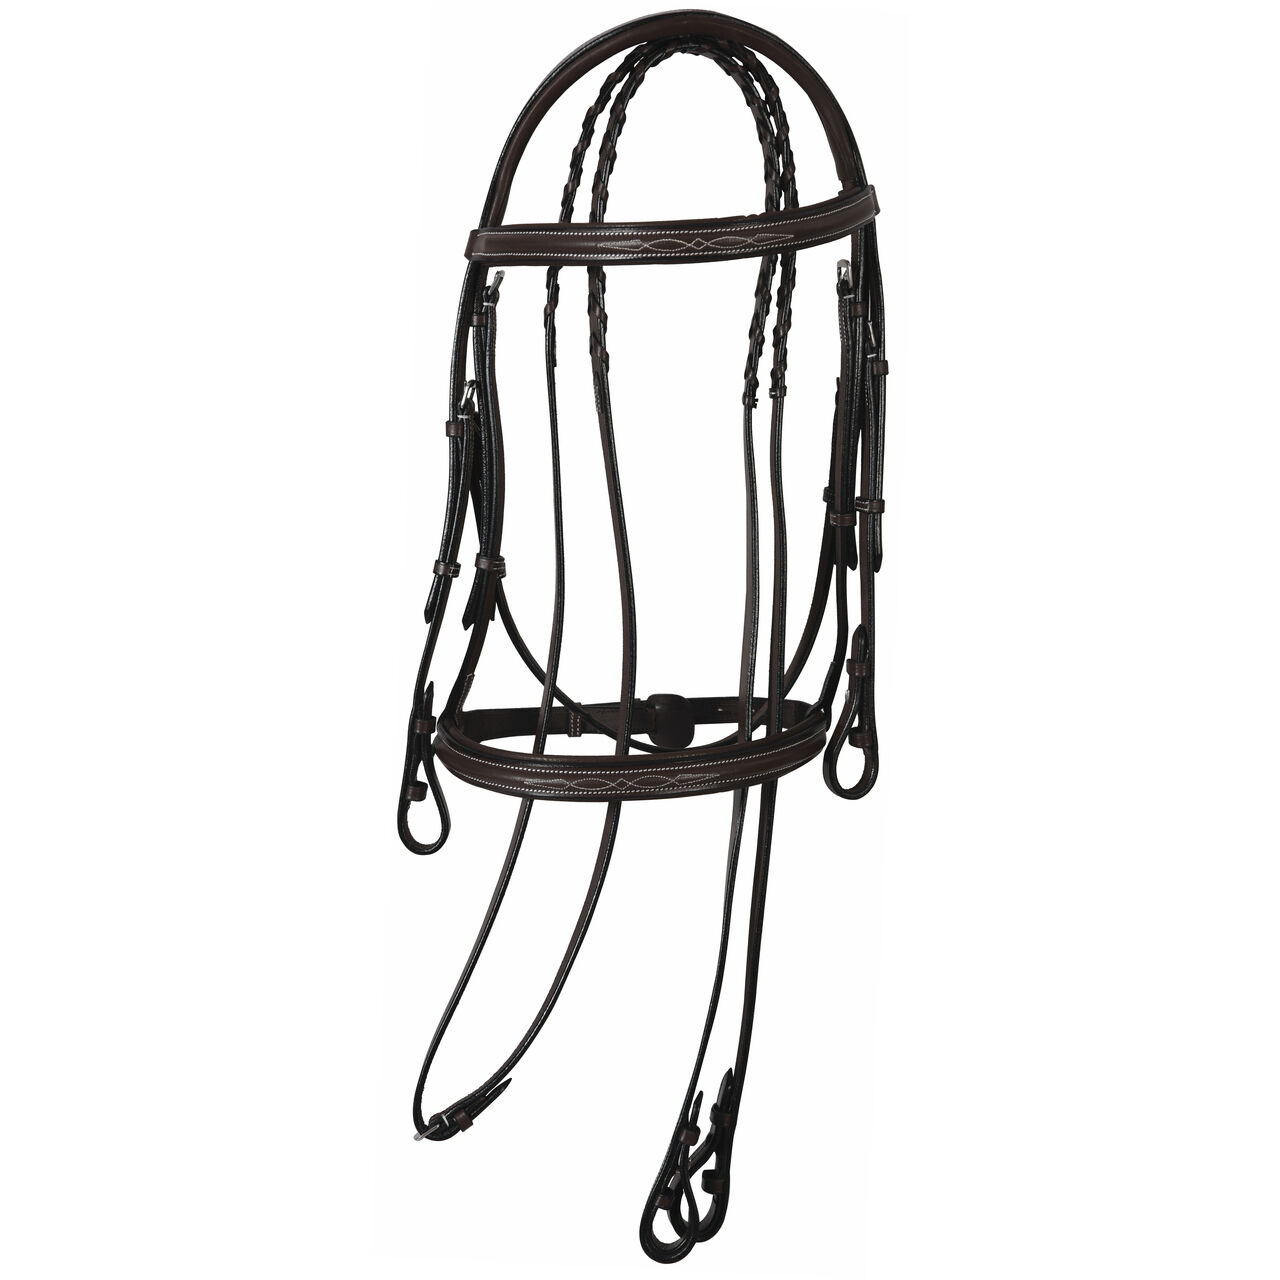 HDR Henri de Rivel  PRO Mono Crown Fancy Pad Bridle -Brown- Cob, Horse & Oversize  preferential